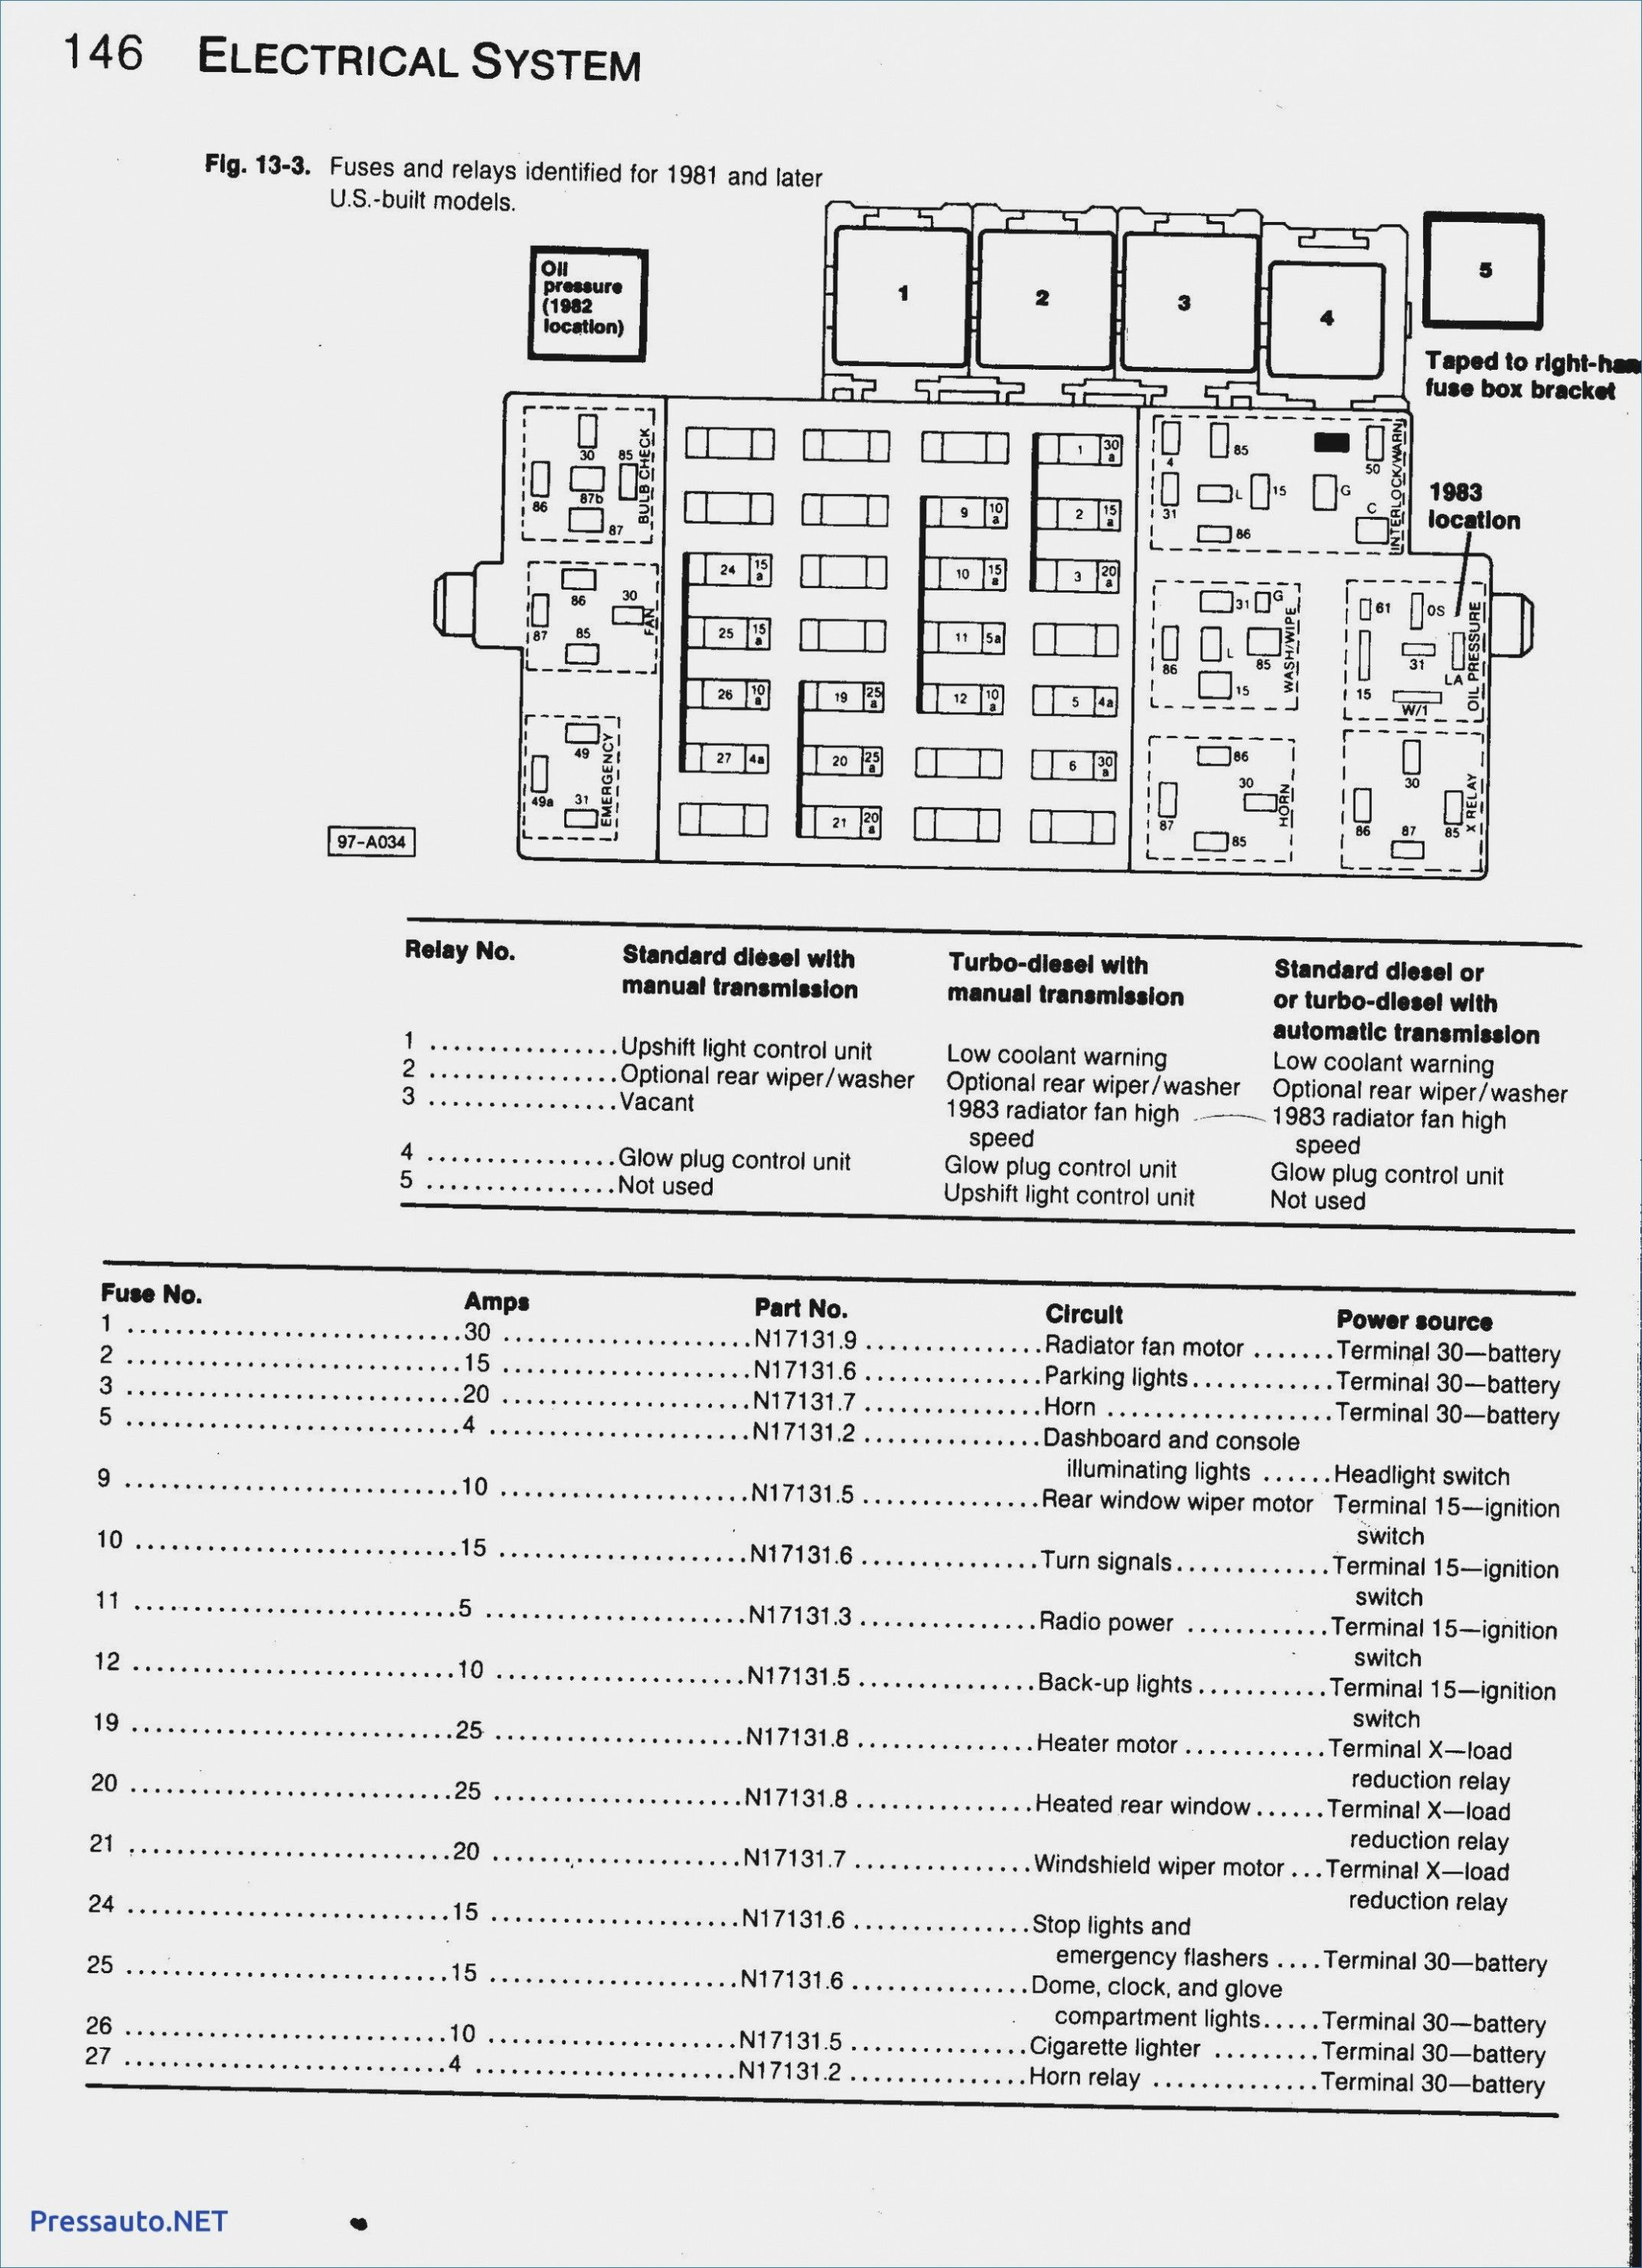 Fuse Box Diagram 2011 Vw Jetta | Fuse box, Vw jetta, Control unitPinterest